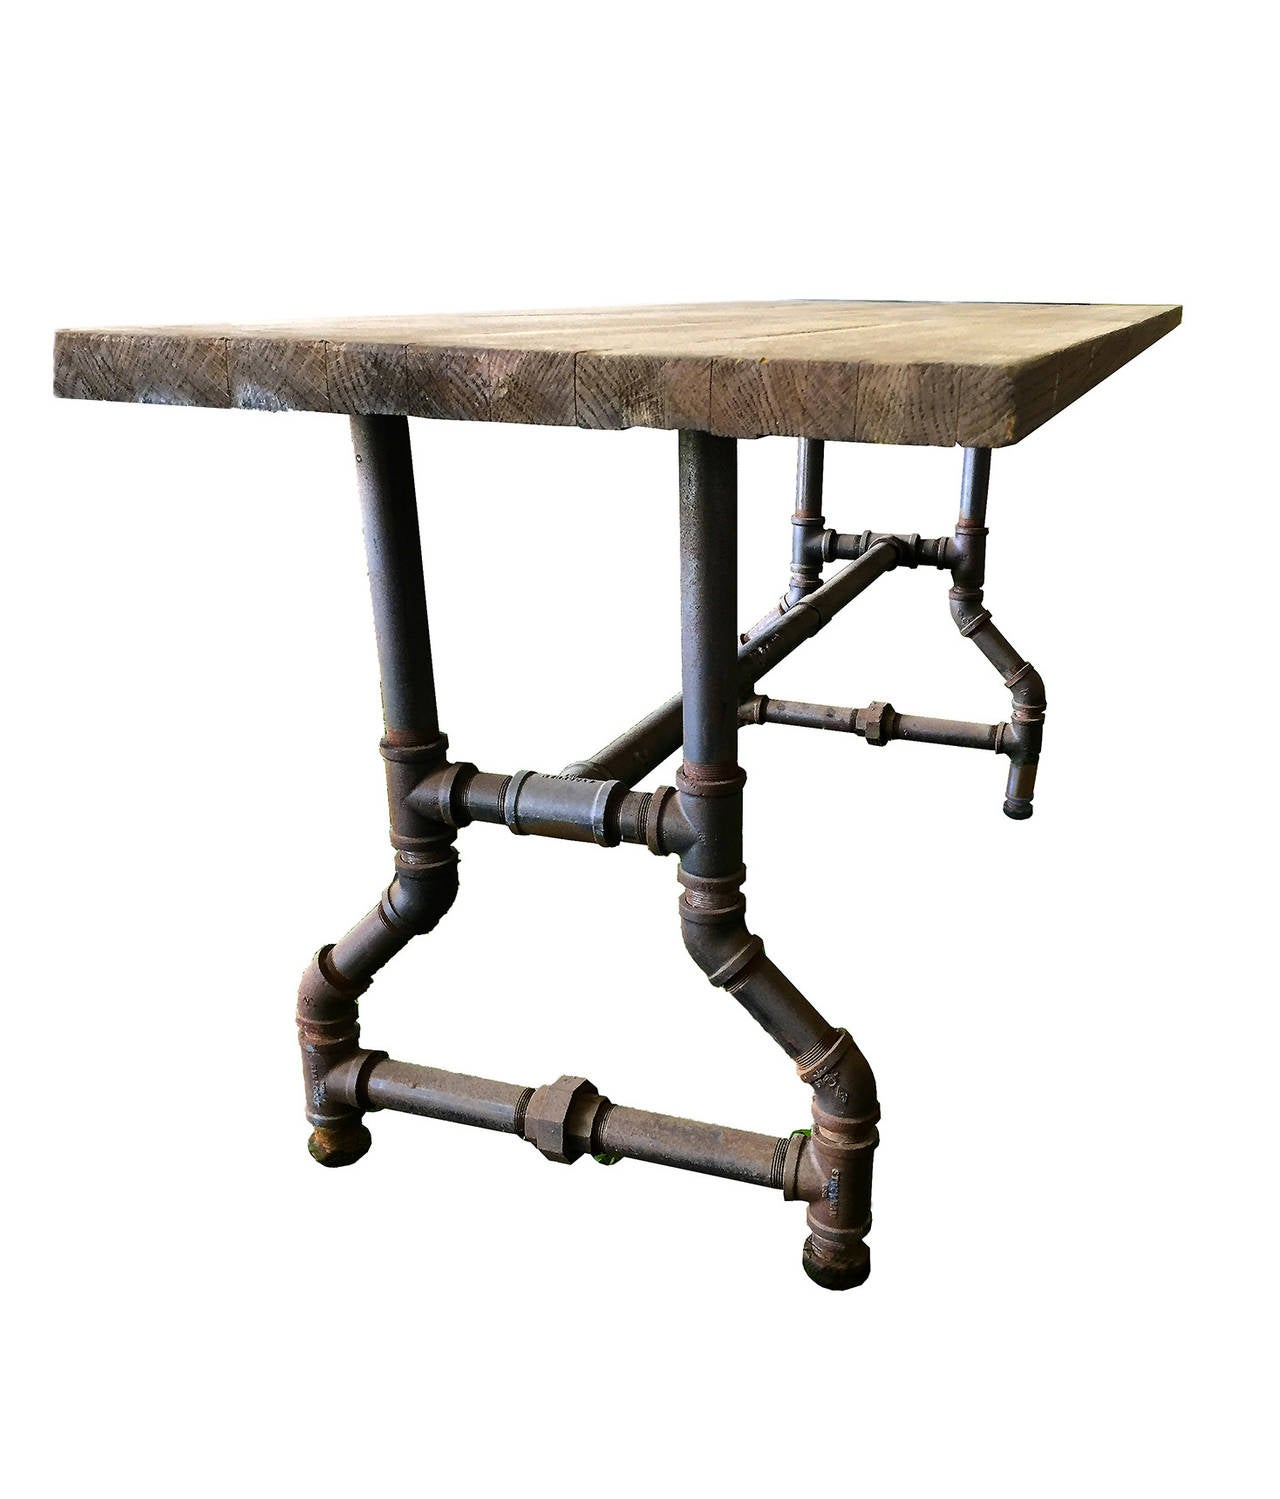 Industrial Dining Room Table unusual rectangular industrial dining table. for sale at 1stdibs